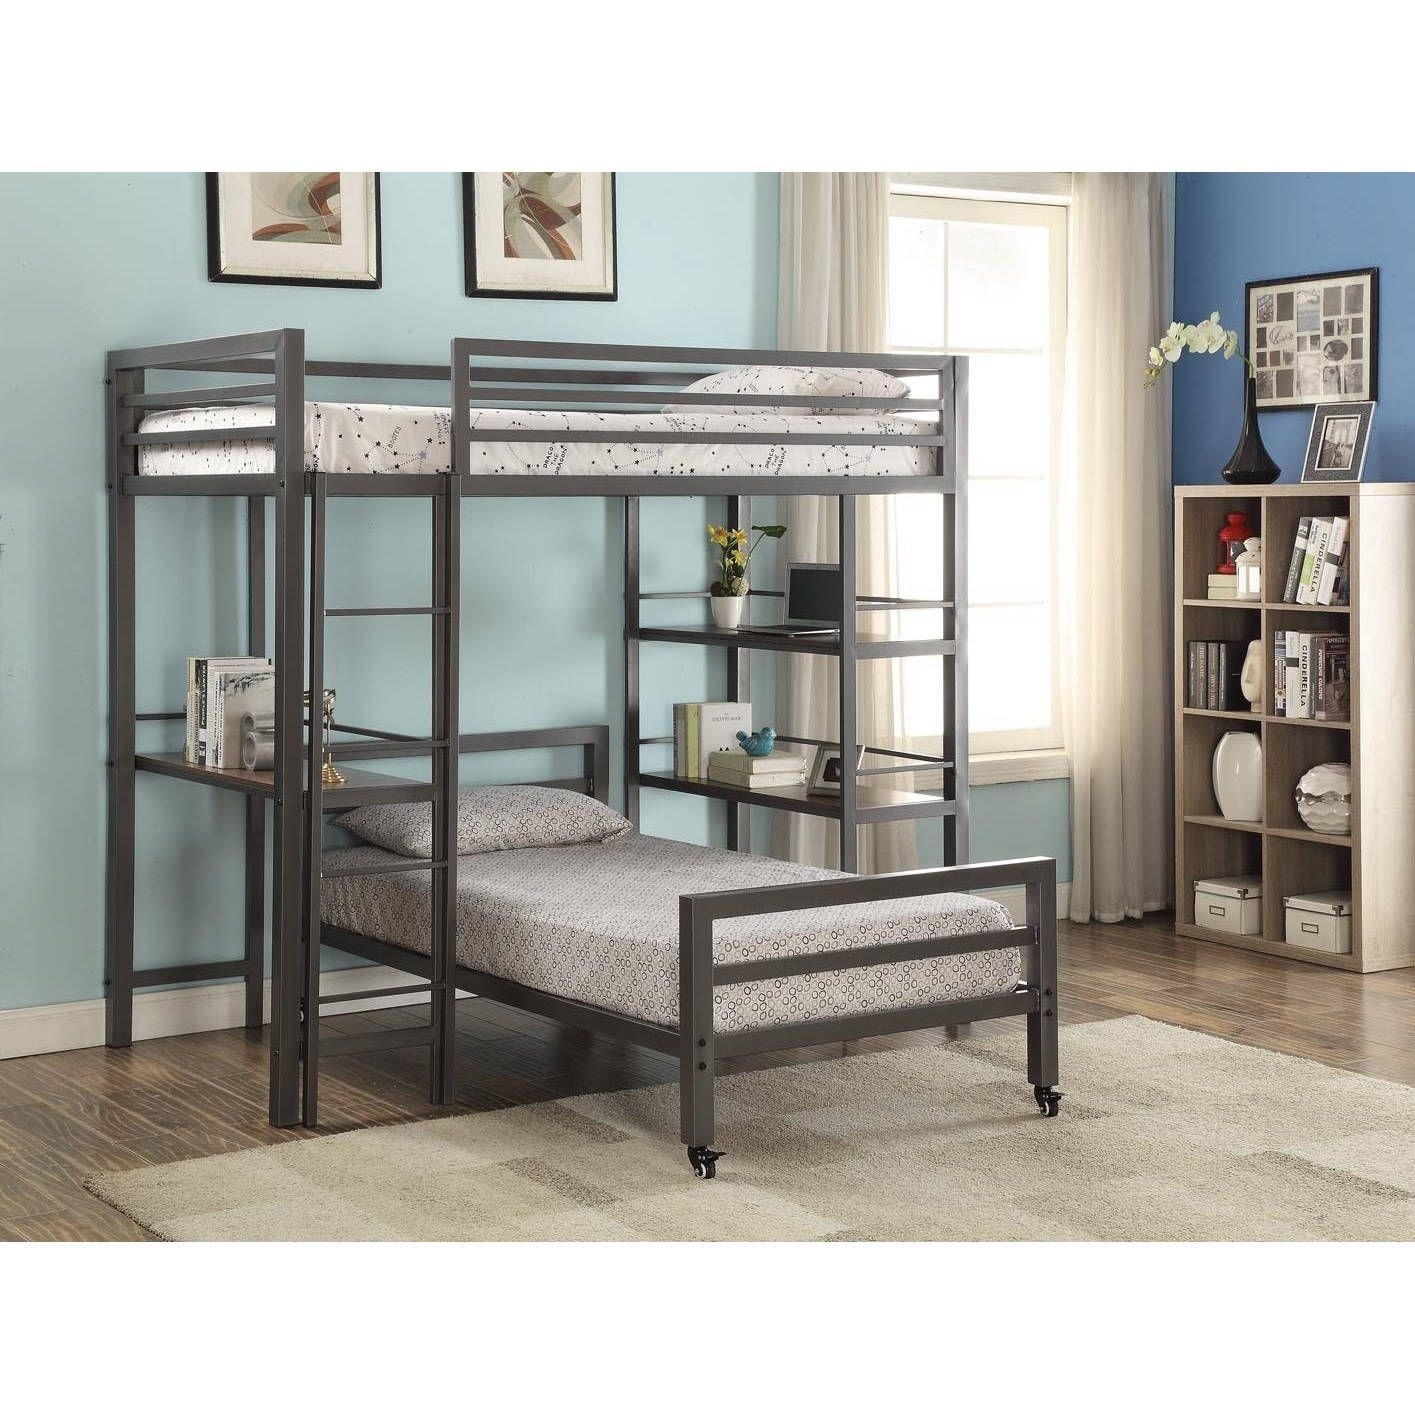 Twin loft bed dimensions  Bella Montell Metal Twin LoftTwin Bed with Bookshelf and Writing